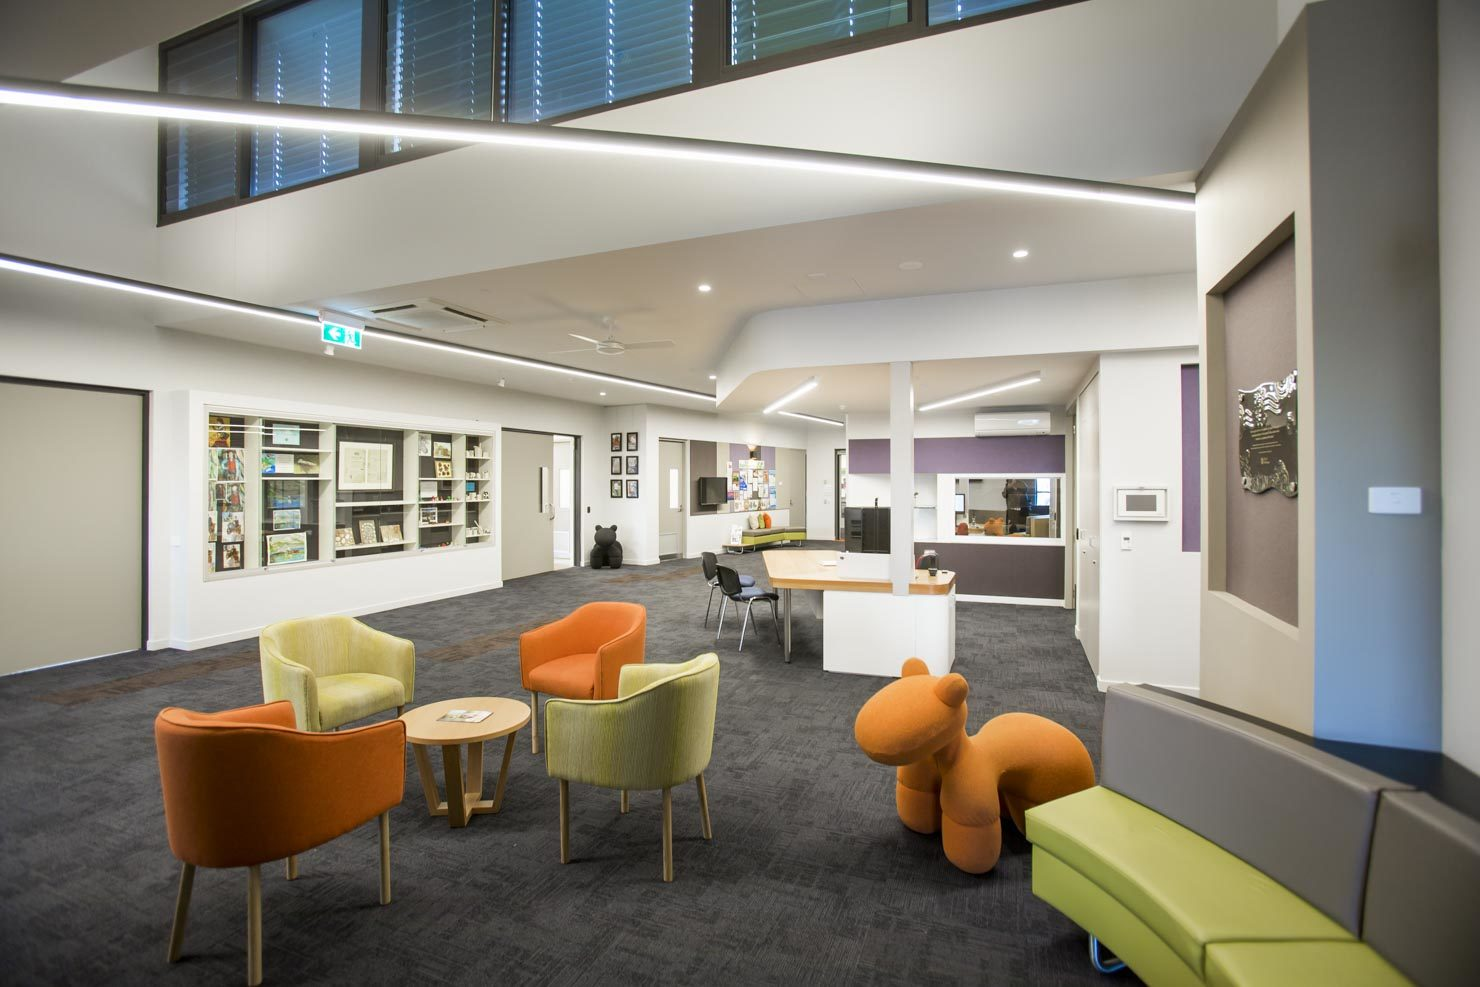 Commercial Property Interior